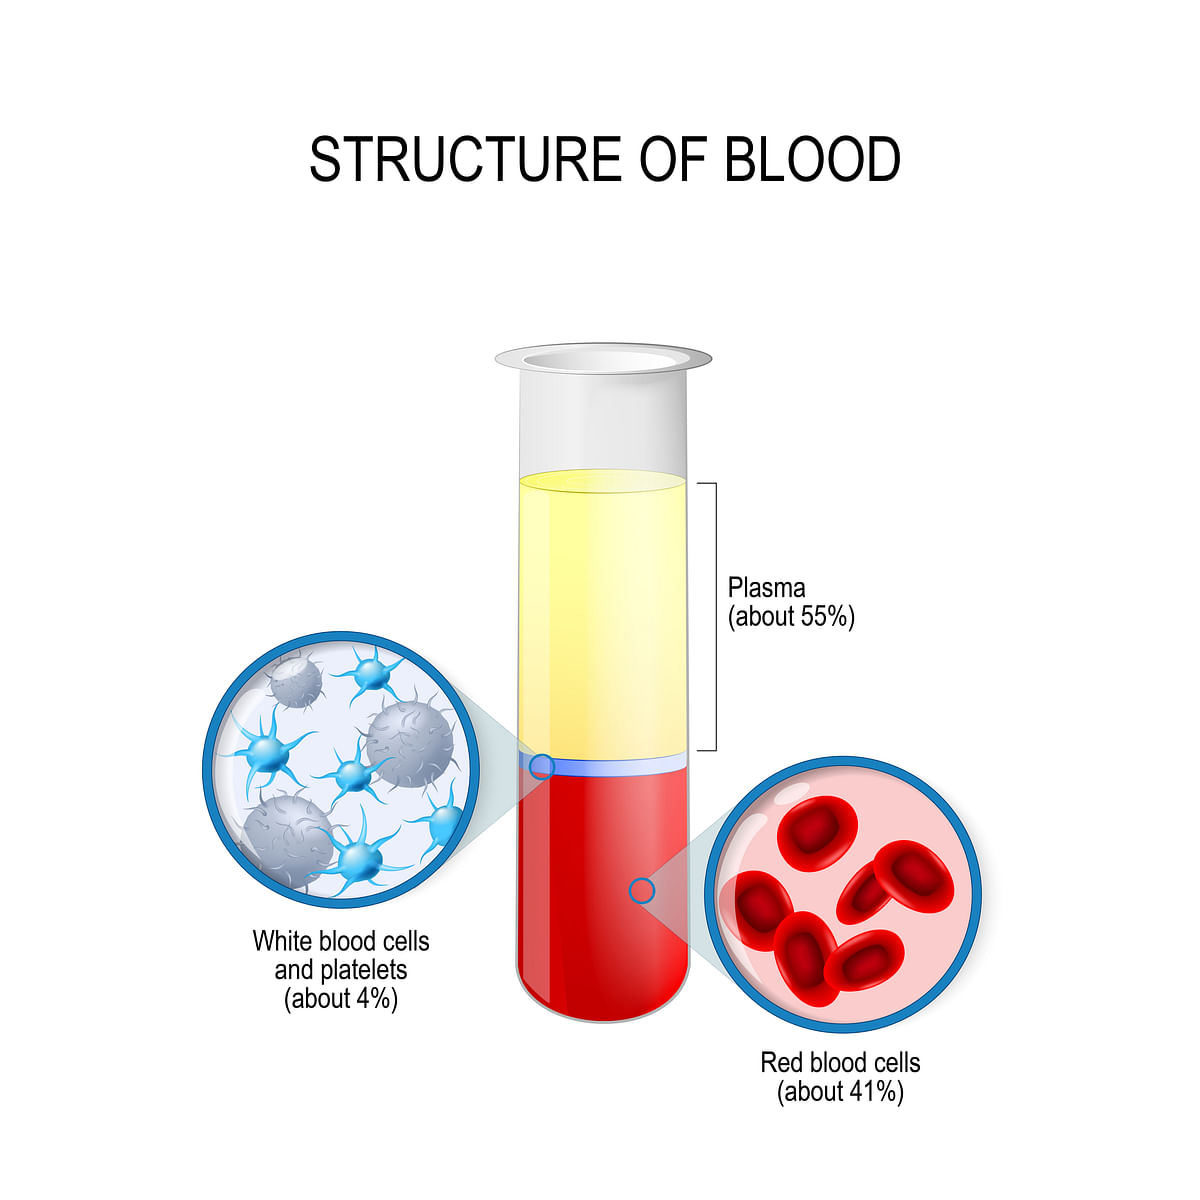 One-third of our blood is plasma.